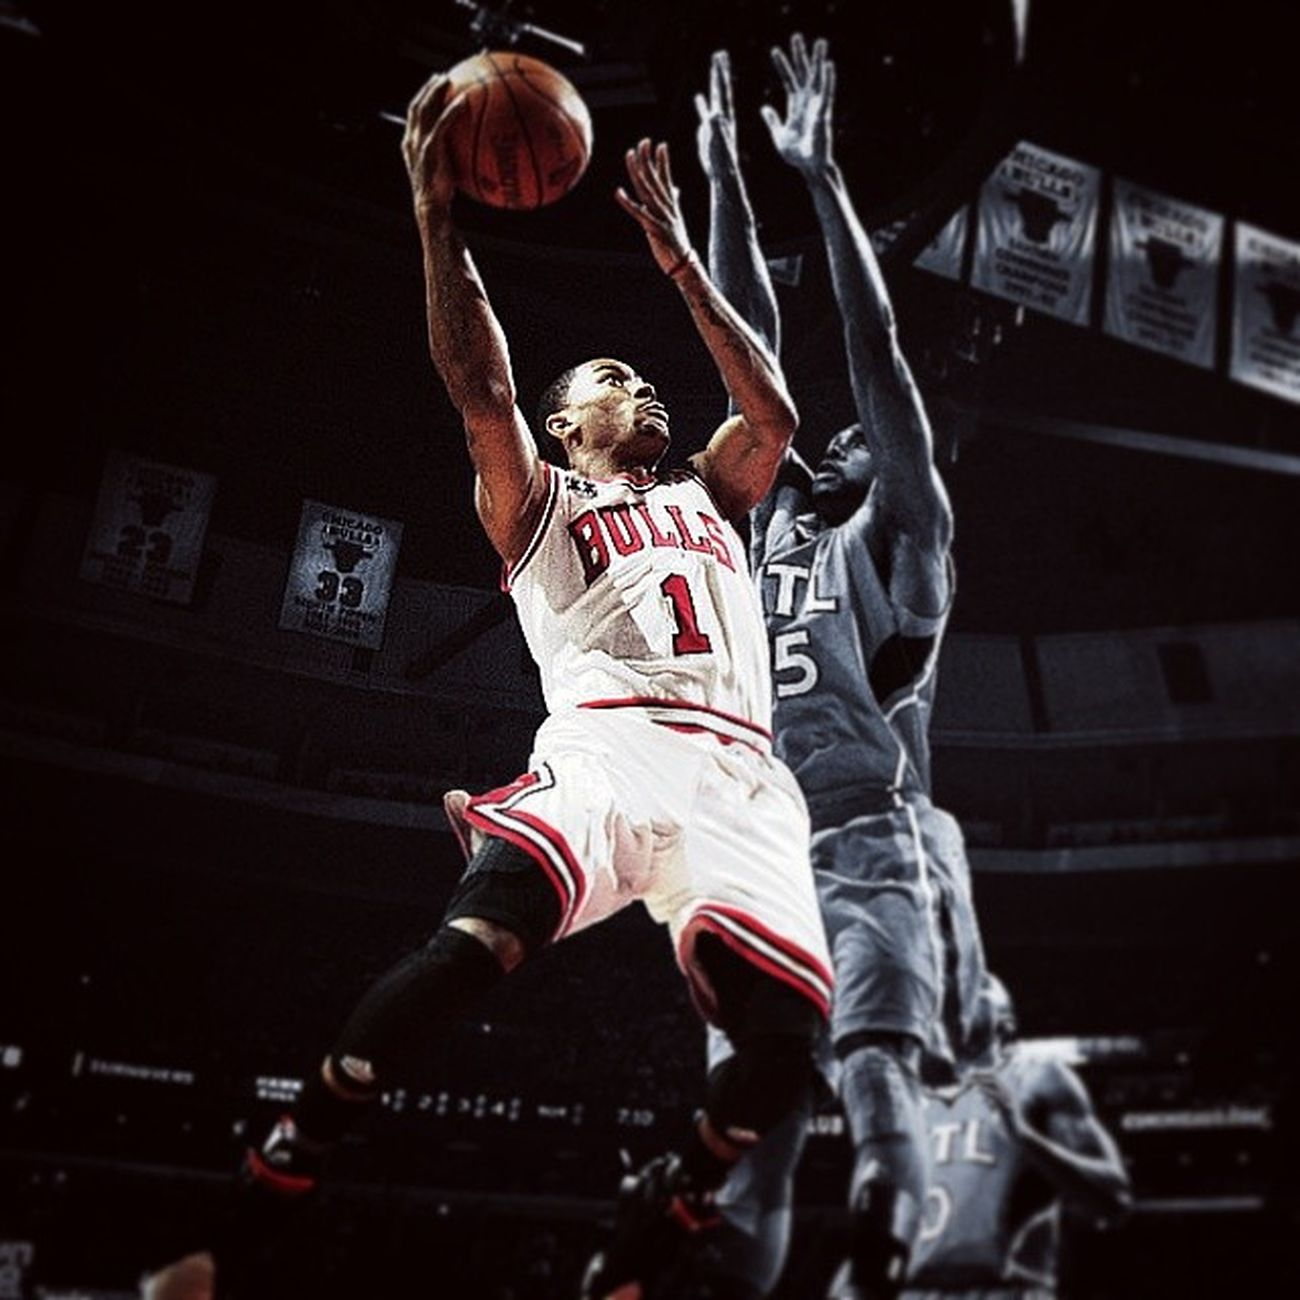 My Favorite Player In The NBA! Can't Wait Tell He Return! World Get Ready Here He Come!!!!!!! RoseNation Thereturn Rose1 D -Rose